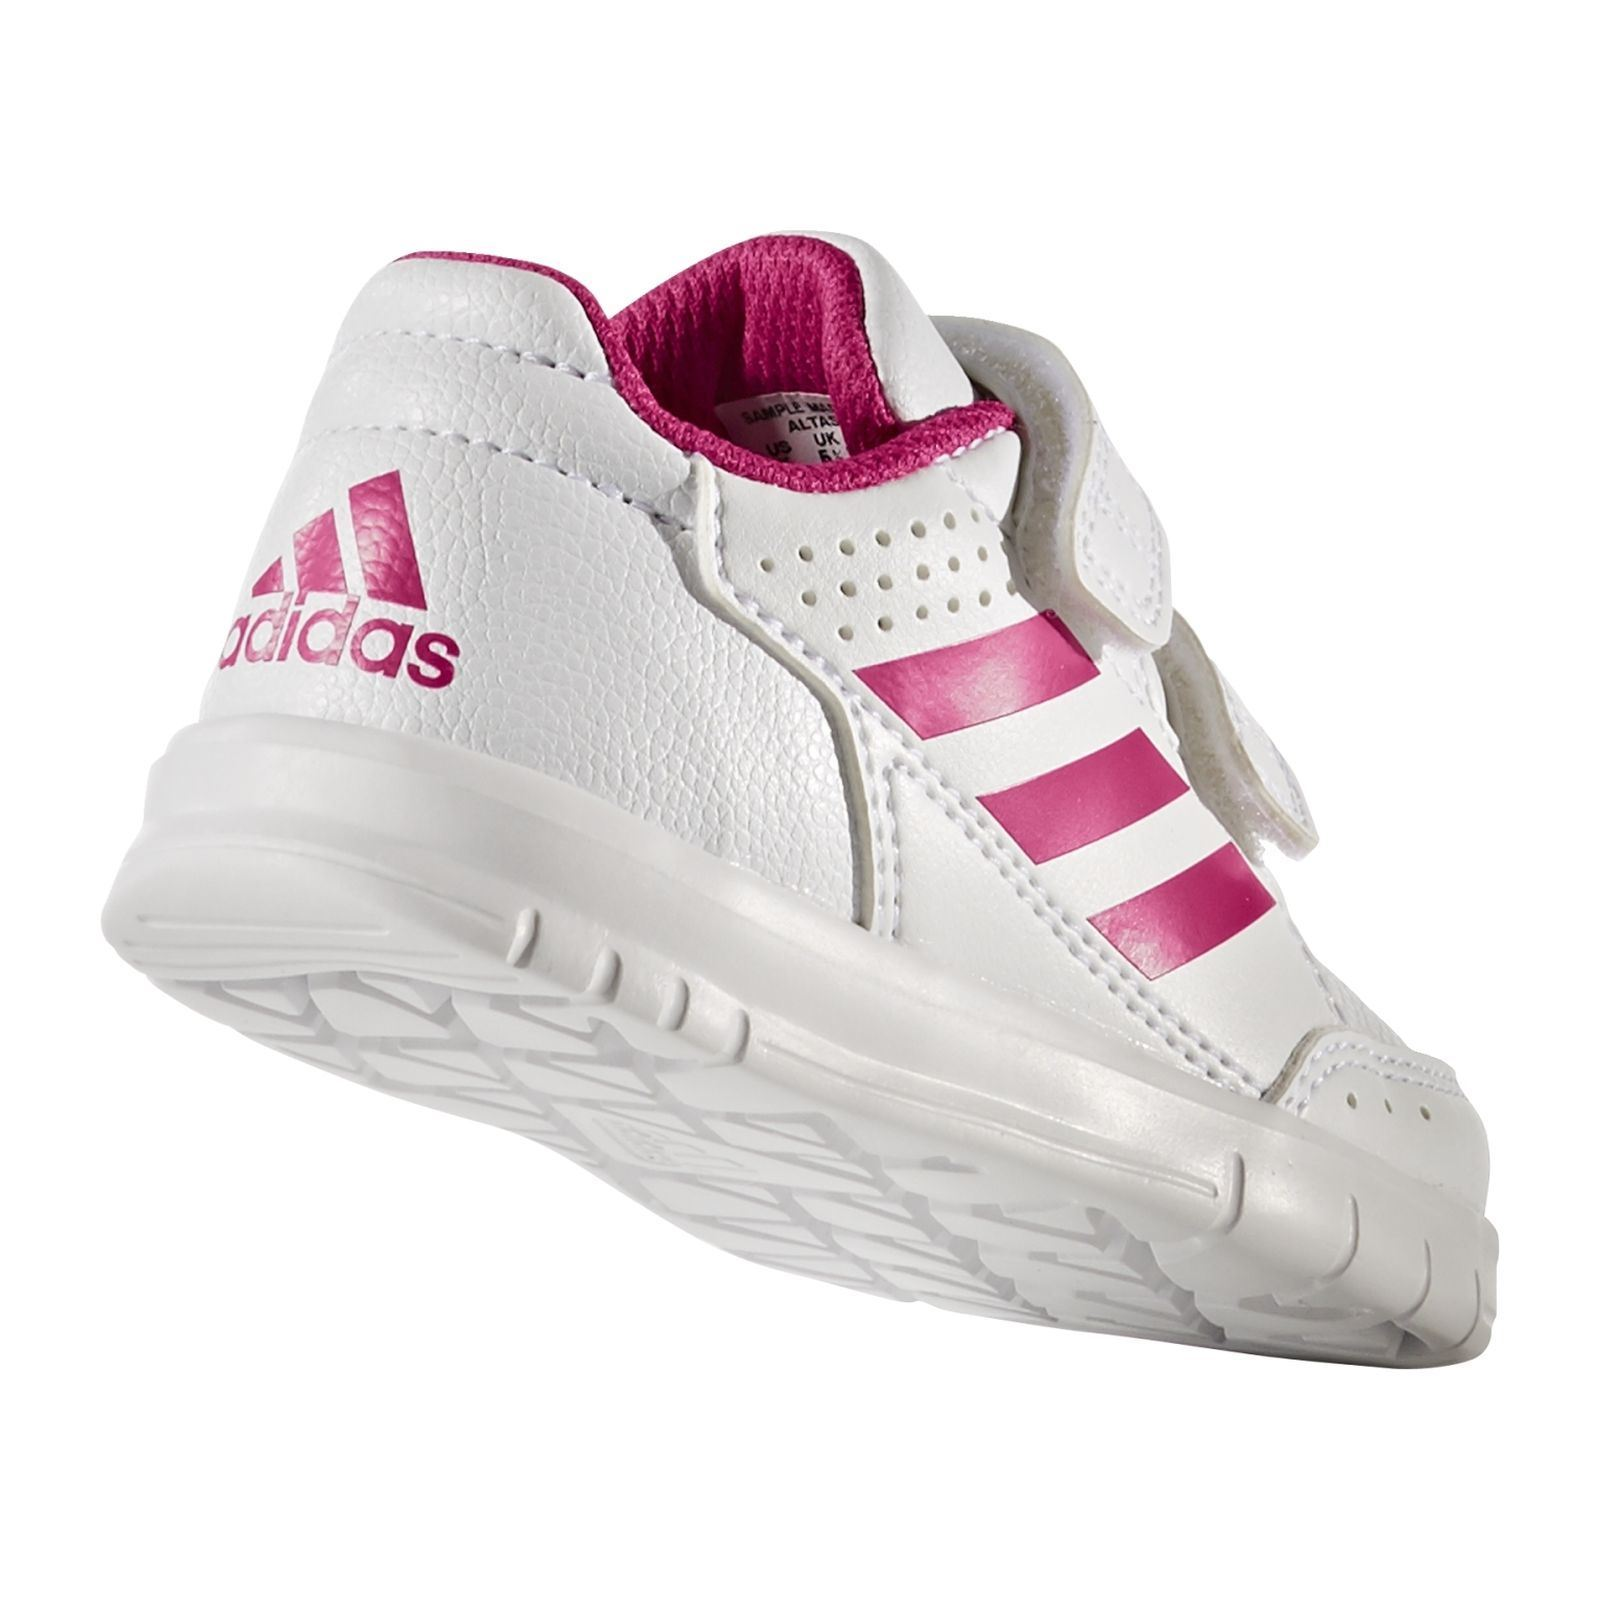 adidas performance altasport cf i turnschuhe sneakers rosa brandalley. Black Bedroom Furniture Sets. Home Design Ideas